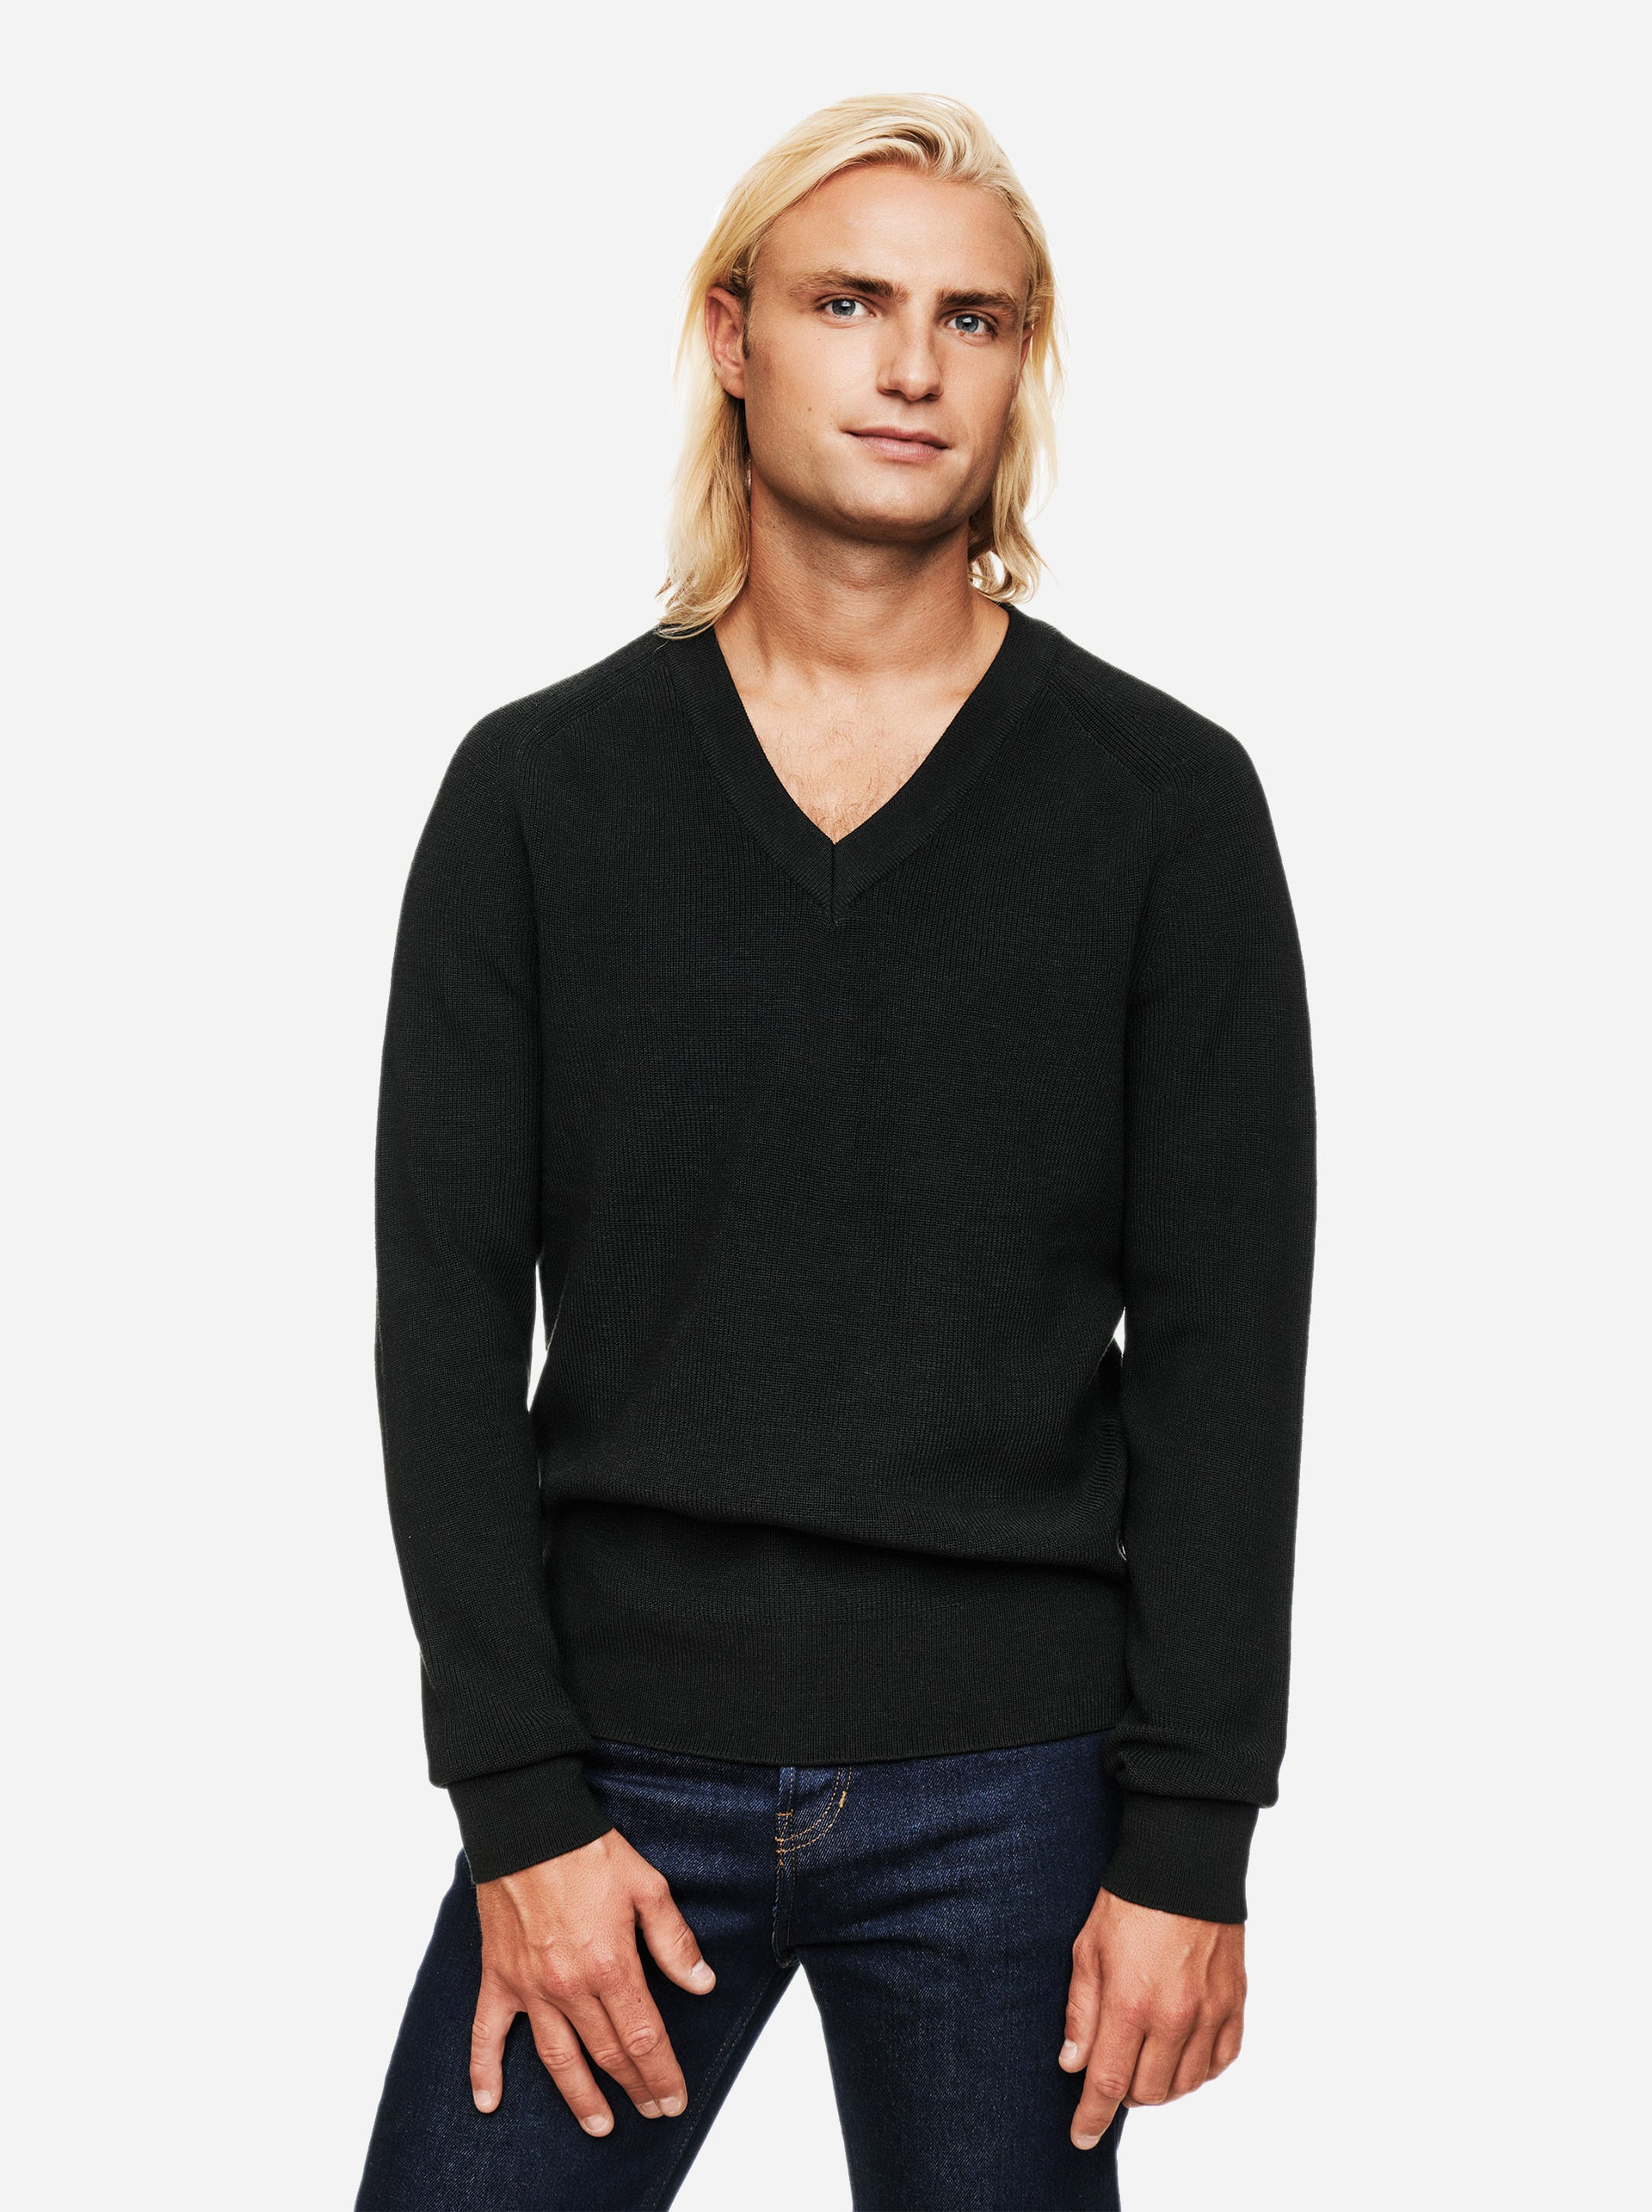 The V-Neck Sweater - Green